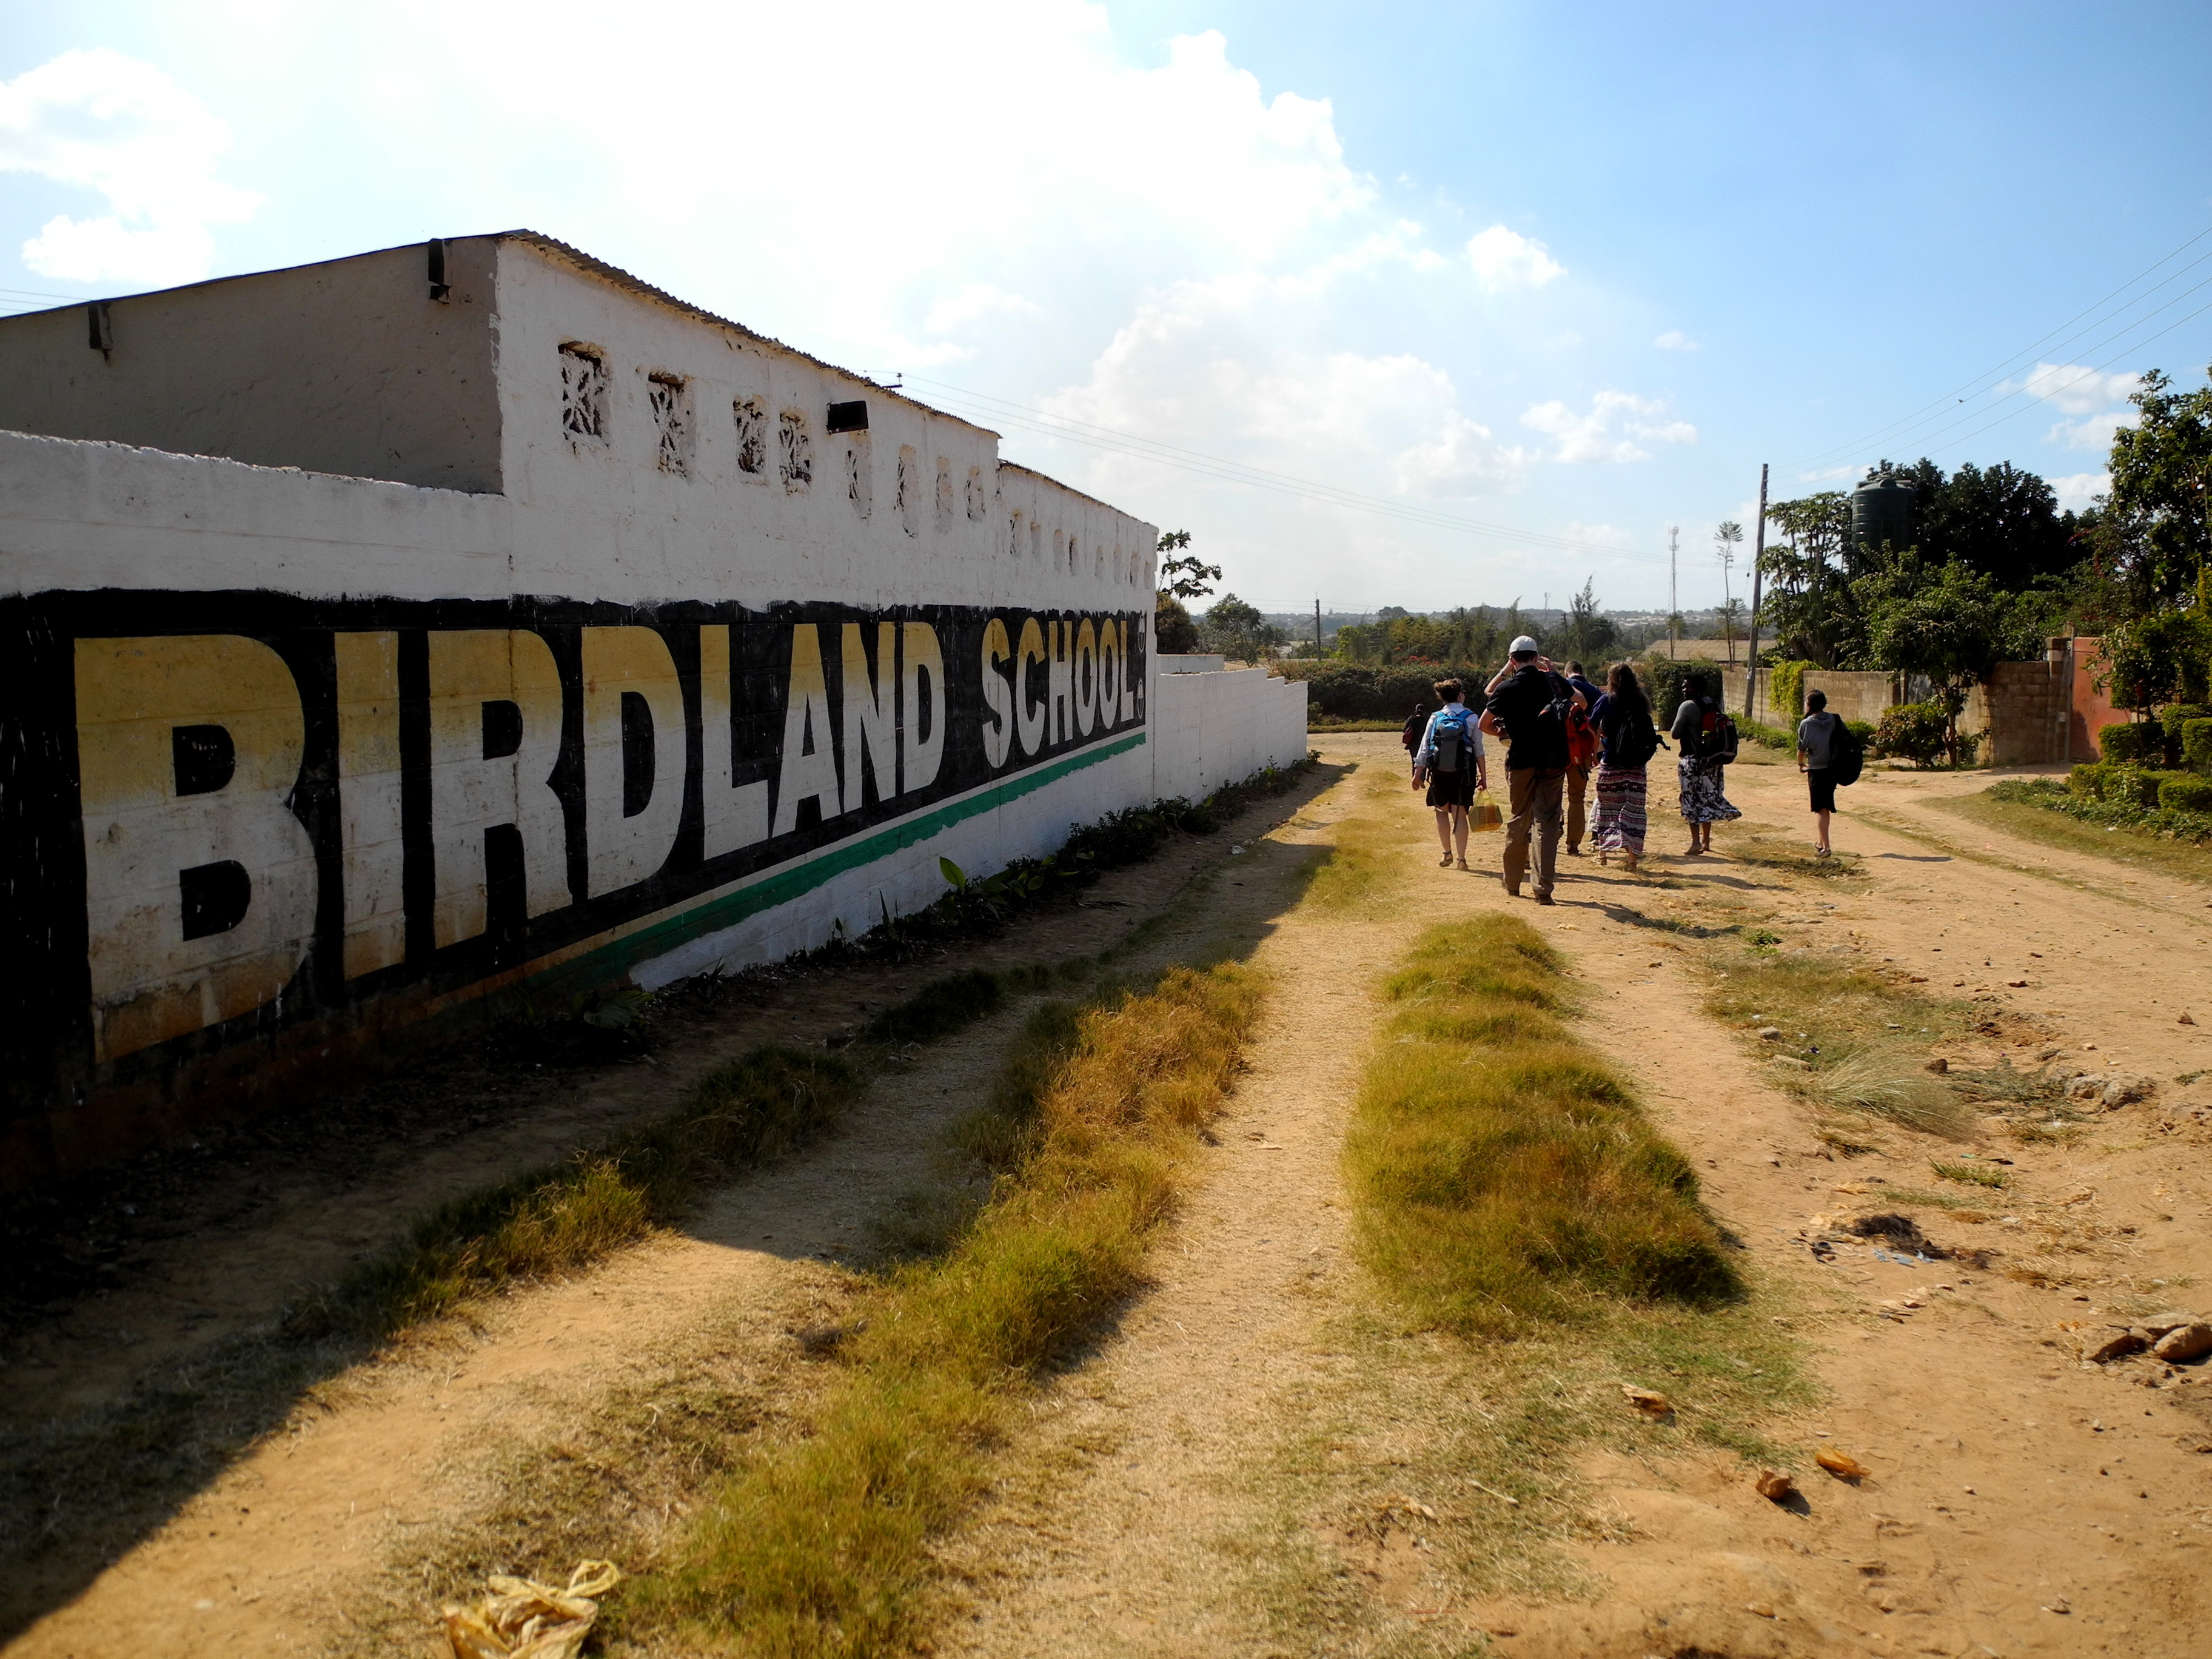 Birdland School. (Photo courtesy Leora Radman and SAAS-ZC.)